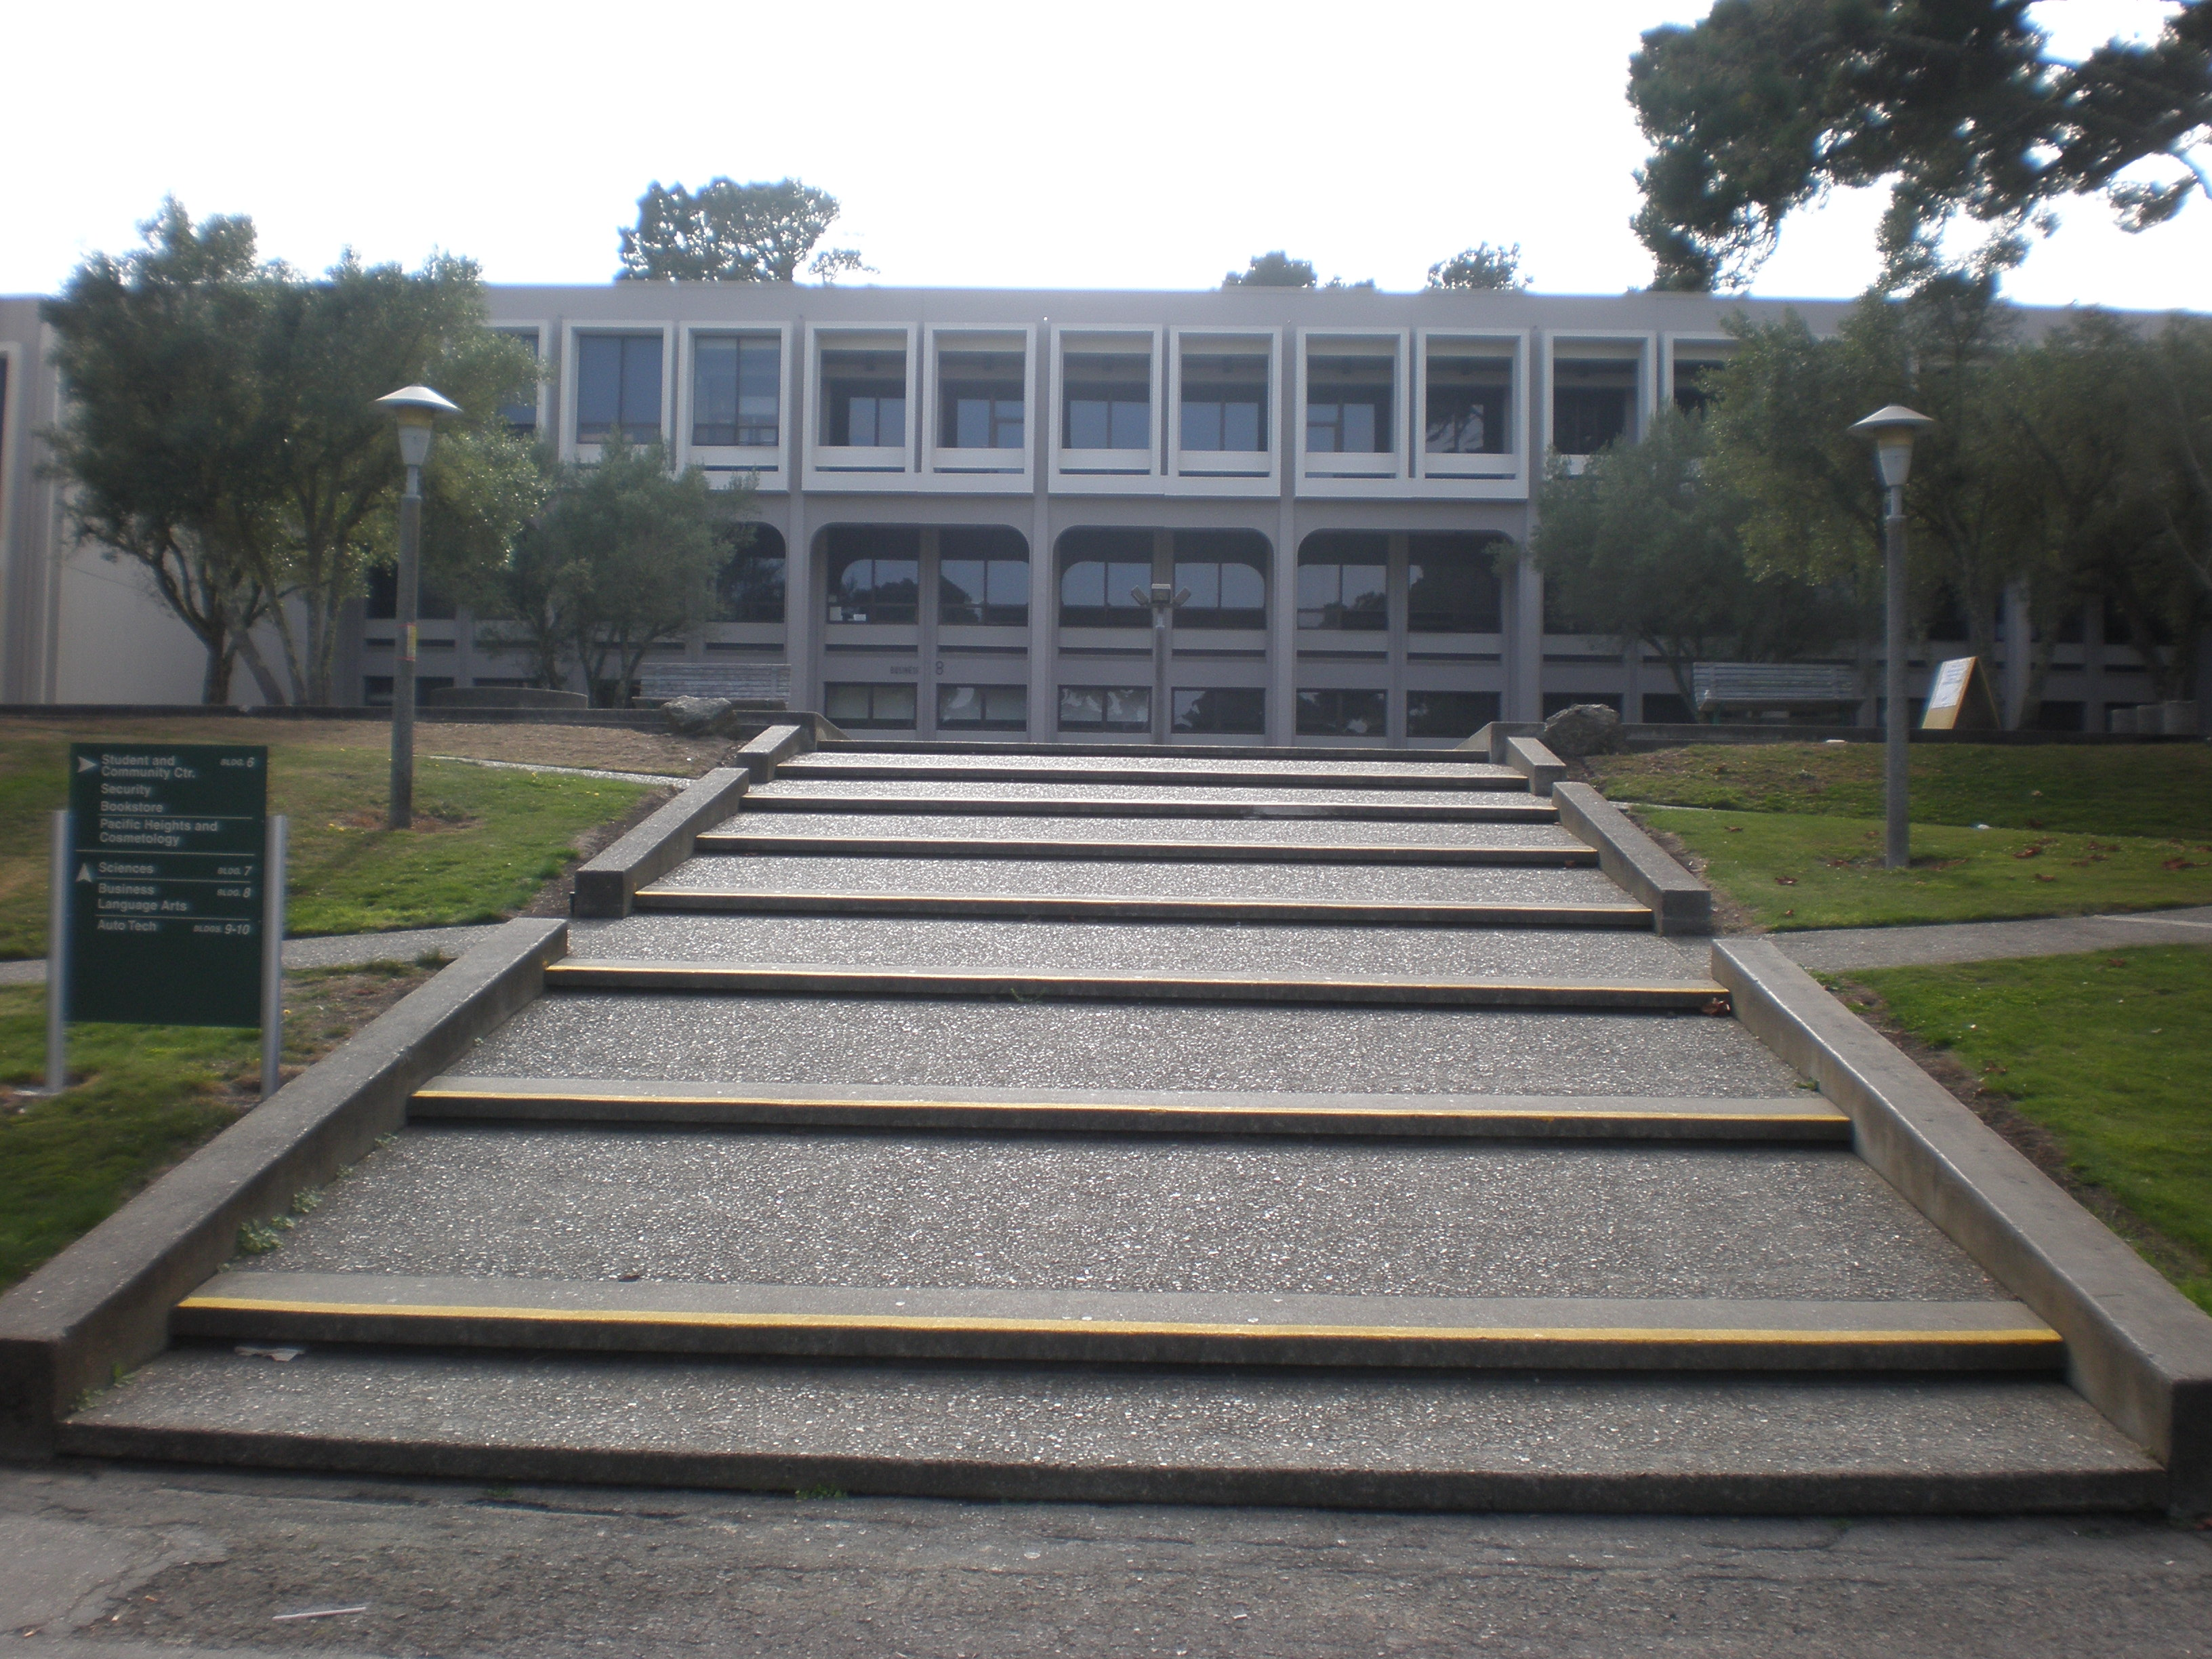 File:Skyline College Building 8 front.JPG - Wikimedia Commons